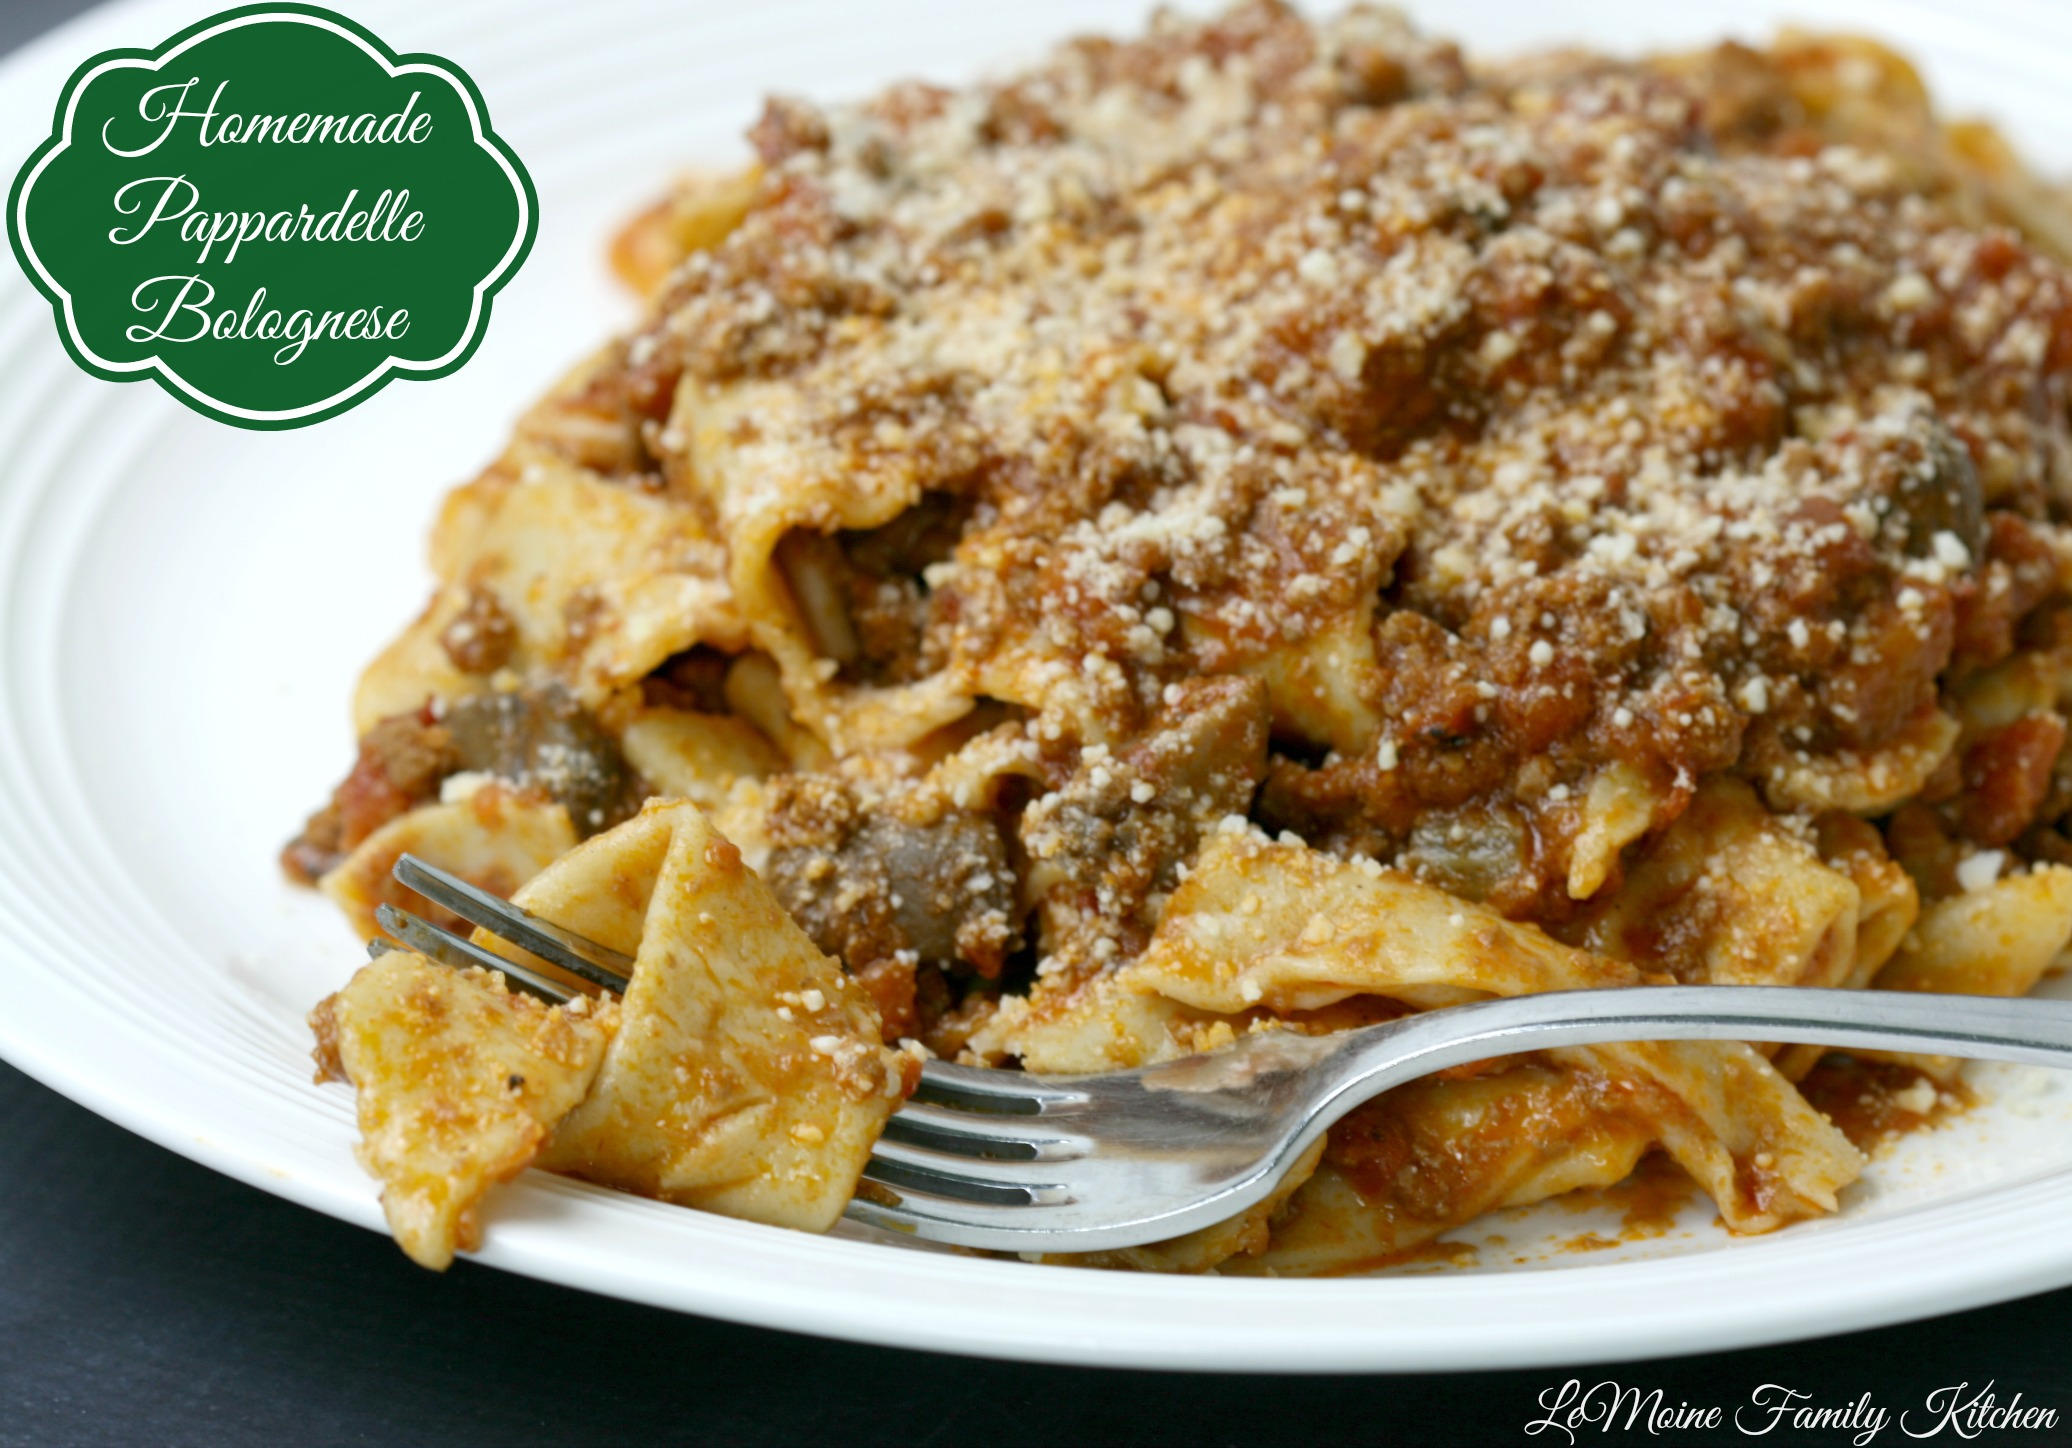 Homemade Pappardelle Bolognese | LeMoine Family Kitchen .... Incredible homemade pasta topped with the BEST Bolognese Sauce! The sauce is finished with mascarpone cheese. This is a meal made in heaven!